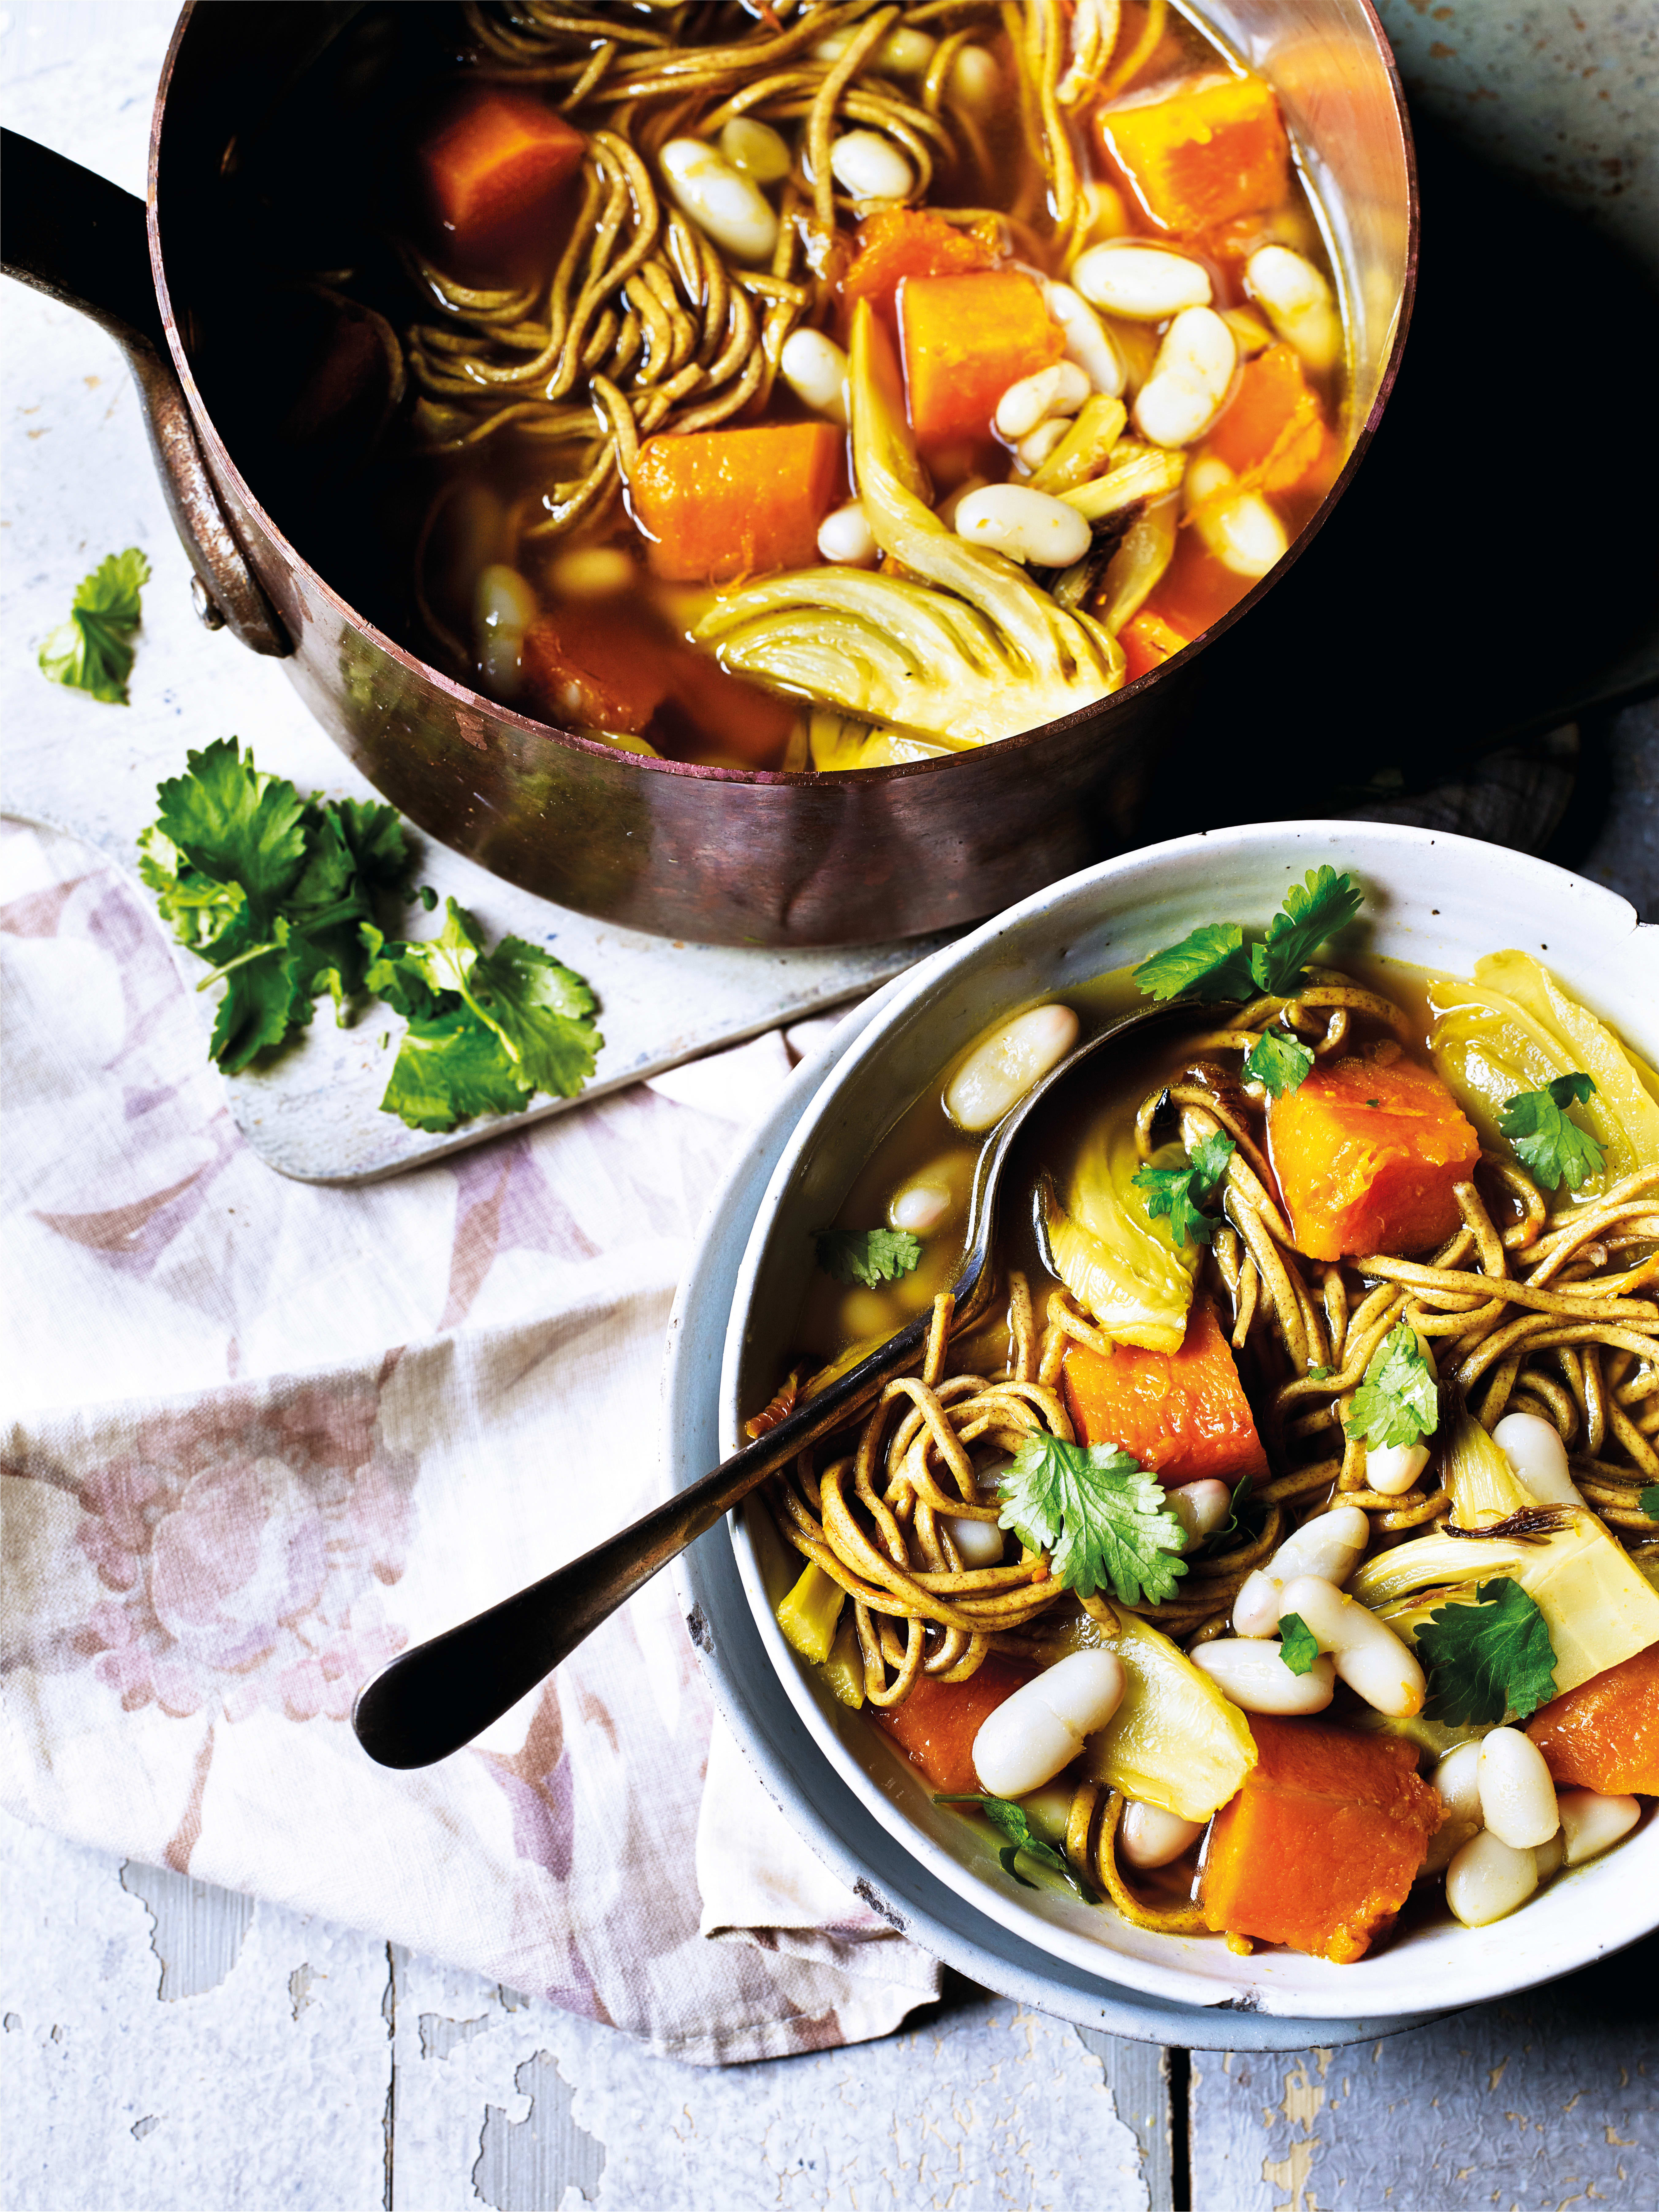 Photo of Turmeric broth bowl with beans, veg & noodles by WW